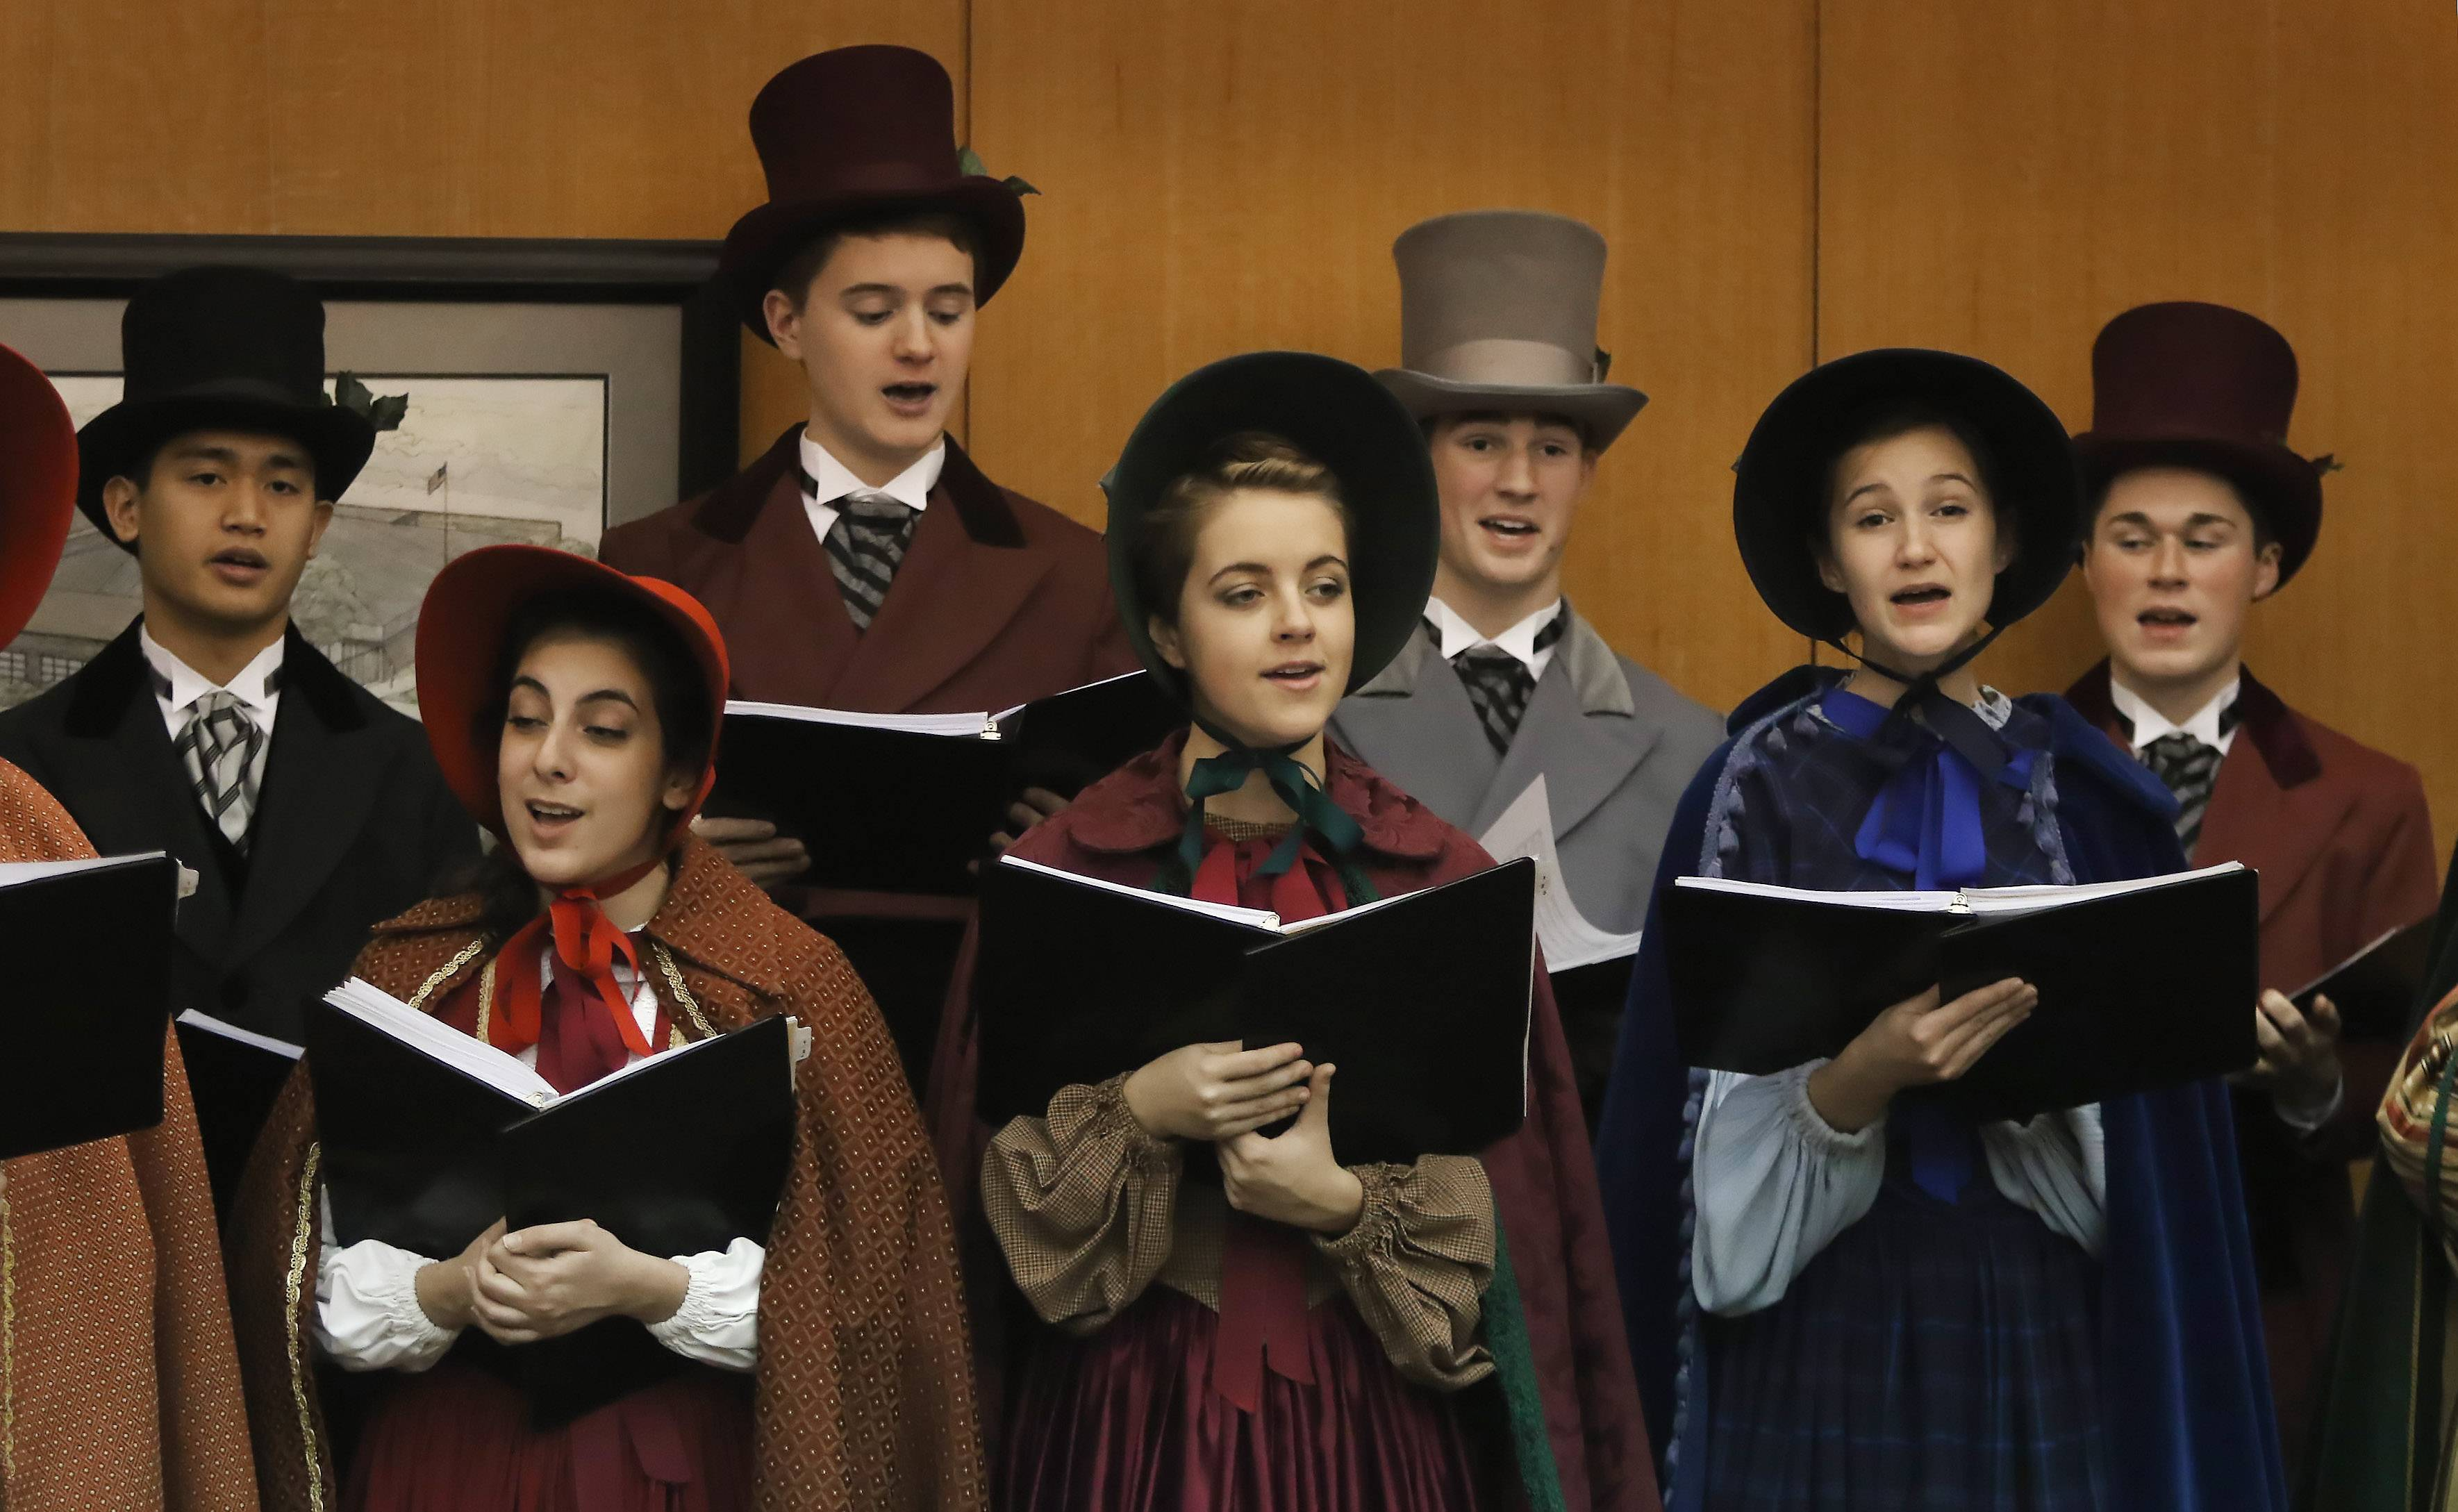 The John Hersey High School Charles Dickens Carolers sang holiday tunes while dressed in Victorian-era garb Sunday at Prospect Heights Public Library.